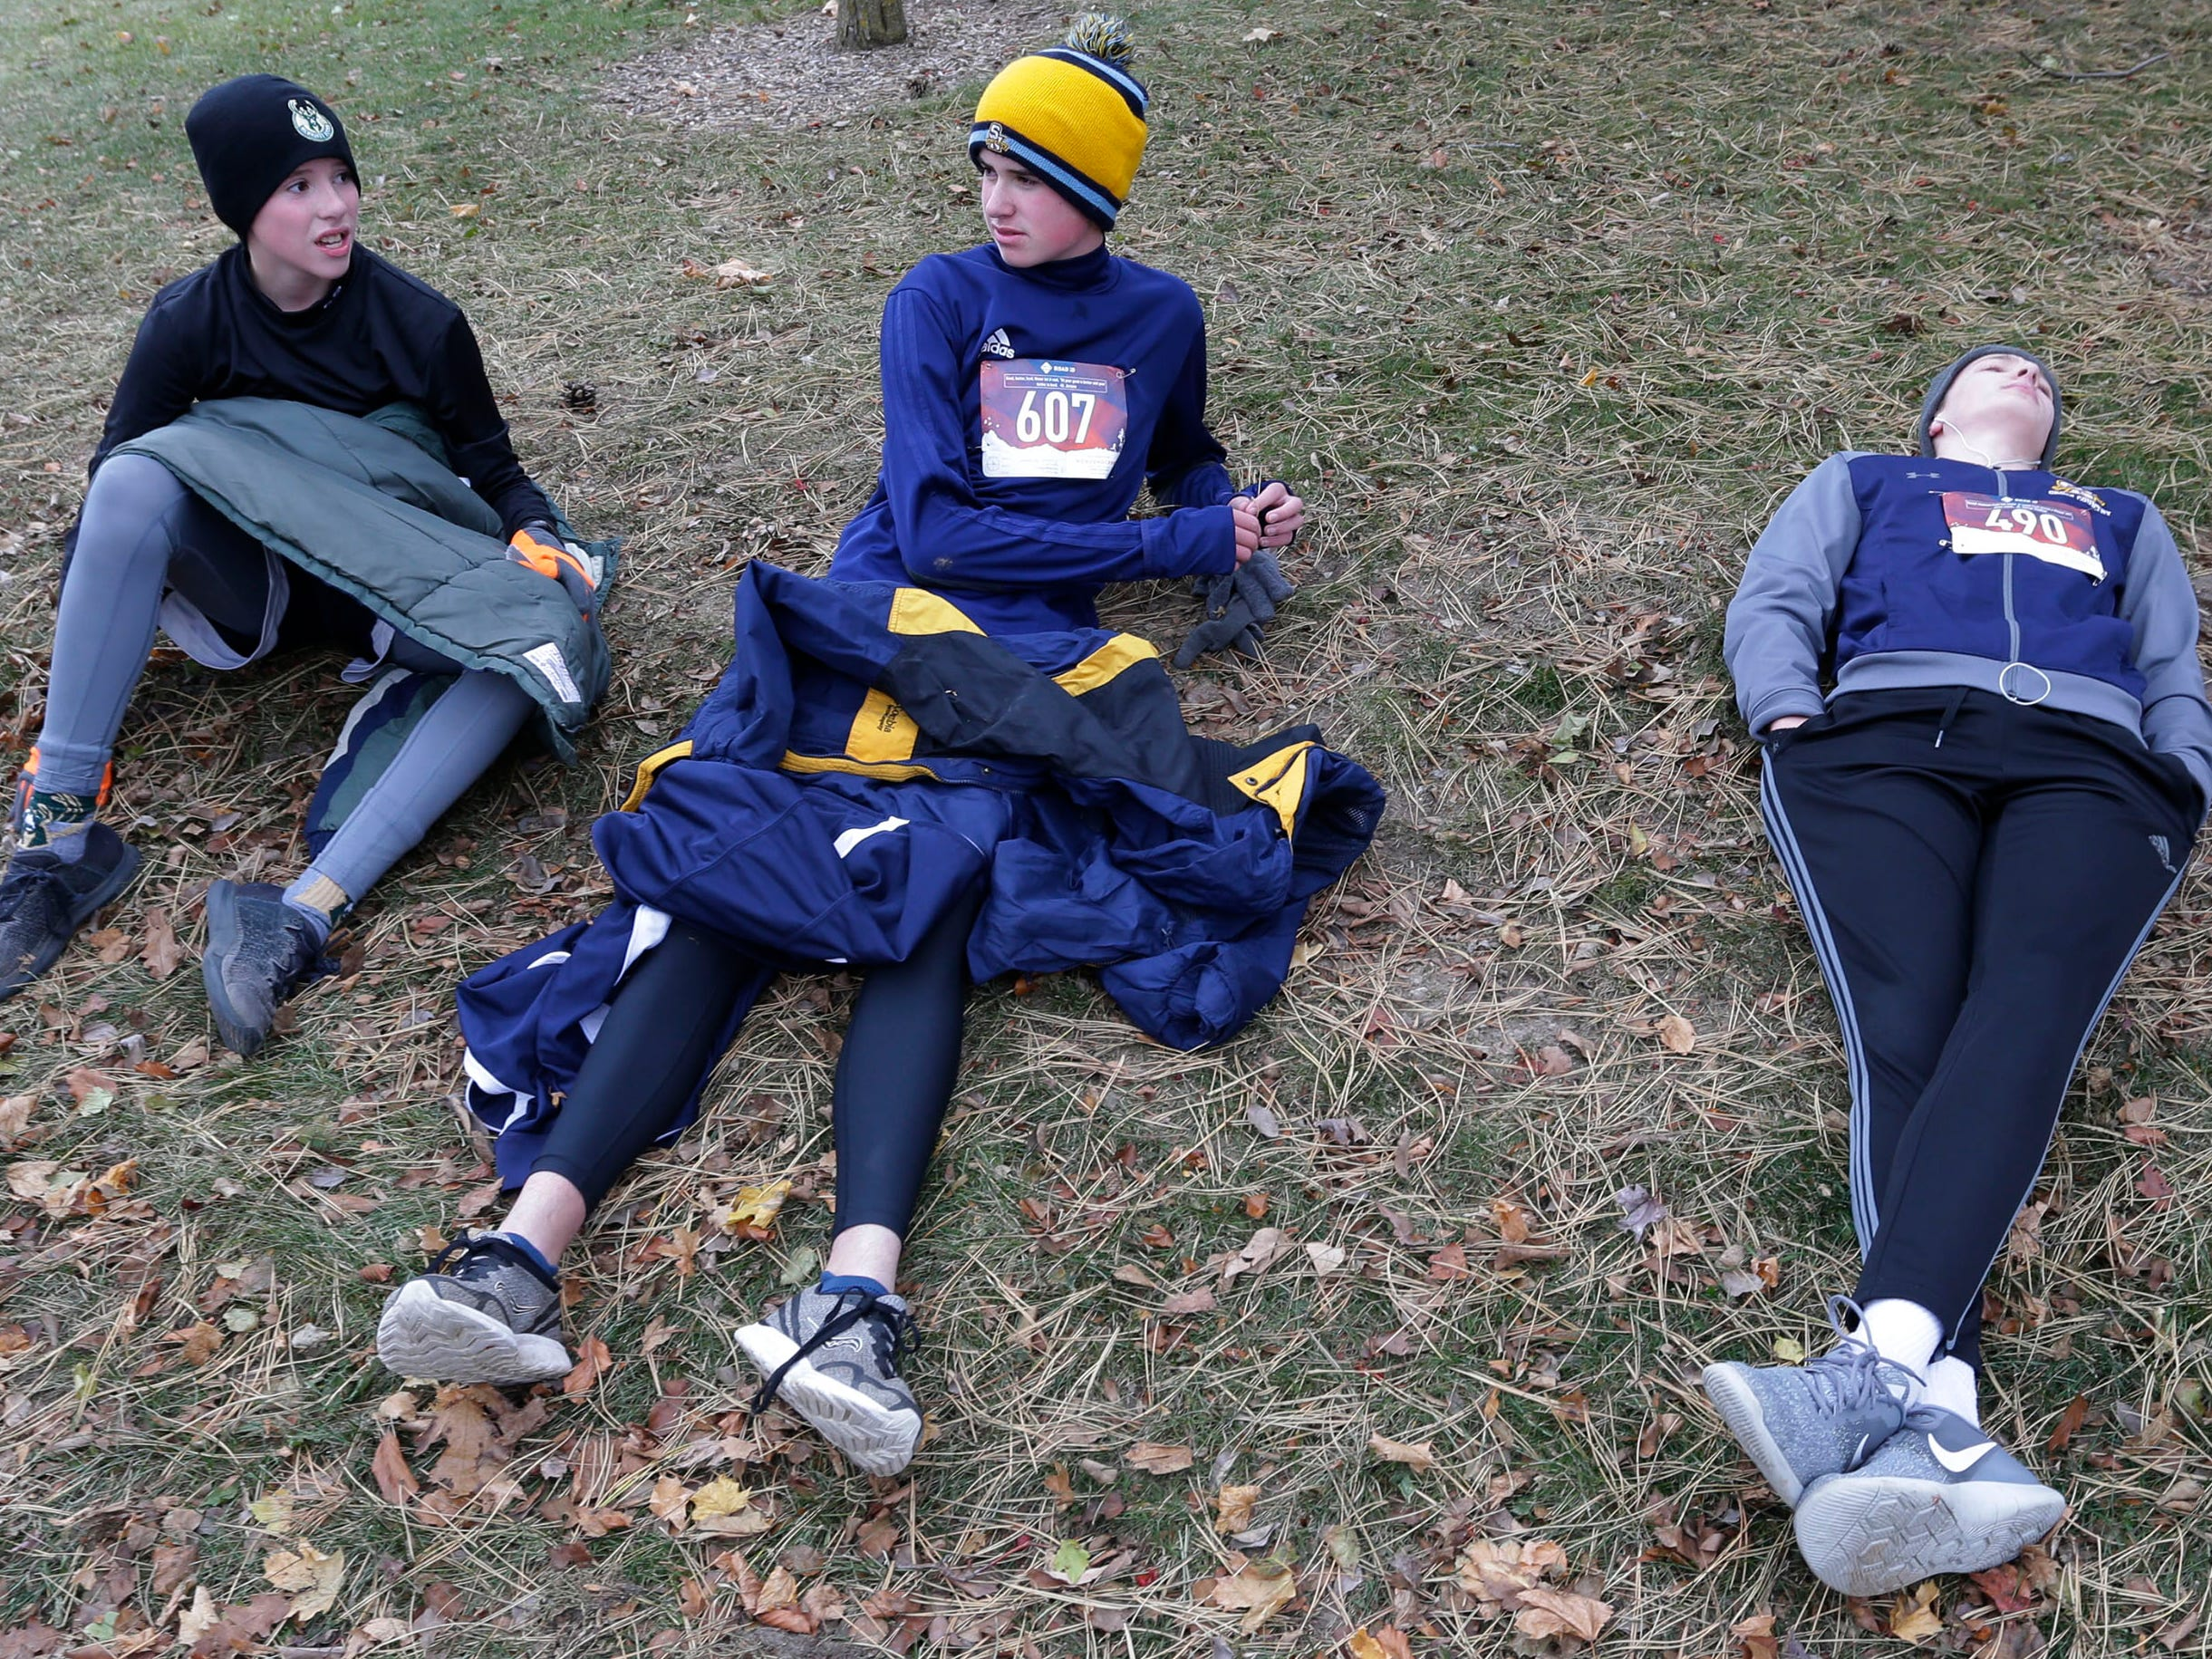 Greg Pittner, left, Chris Pittner, middle and Joseph Basler rest after completing the Doug Opel Run for the Kids, Thursday, November 22, 2018, in Sheboygan, Wis.